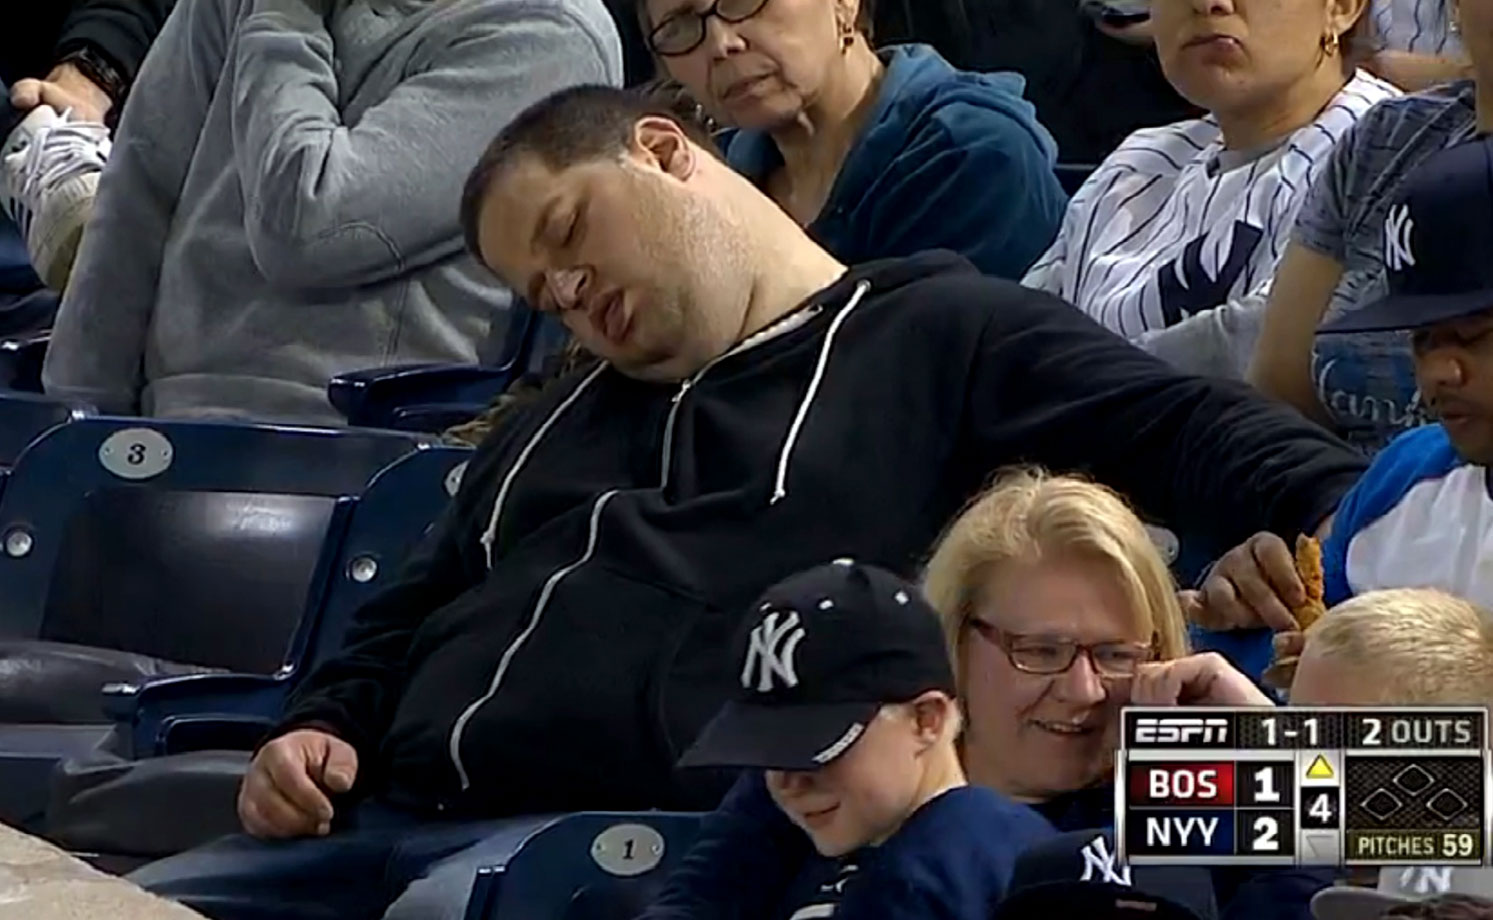 A man shown sleeping at an April 13 Yankees-Red Sox game has brought a $10 million suit against MLB, ESPN and the Yankees for defamation and emotional stress.